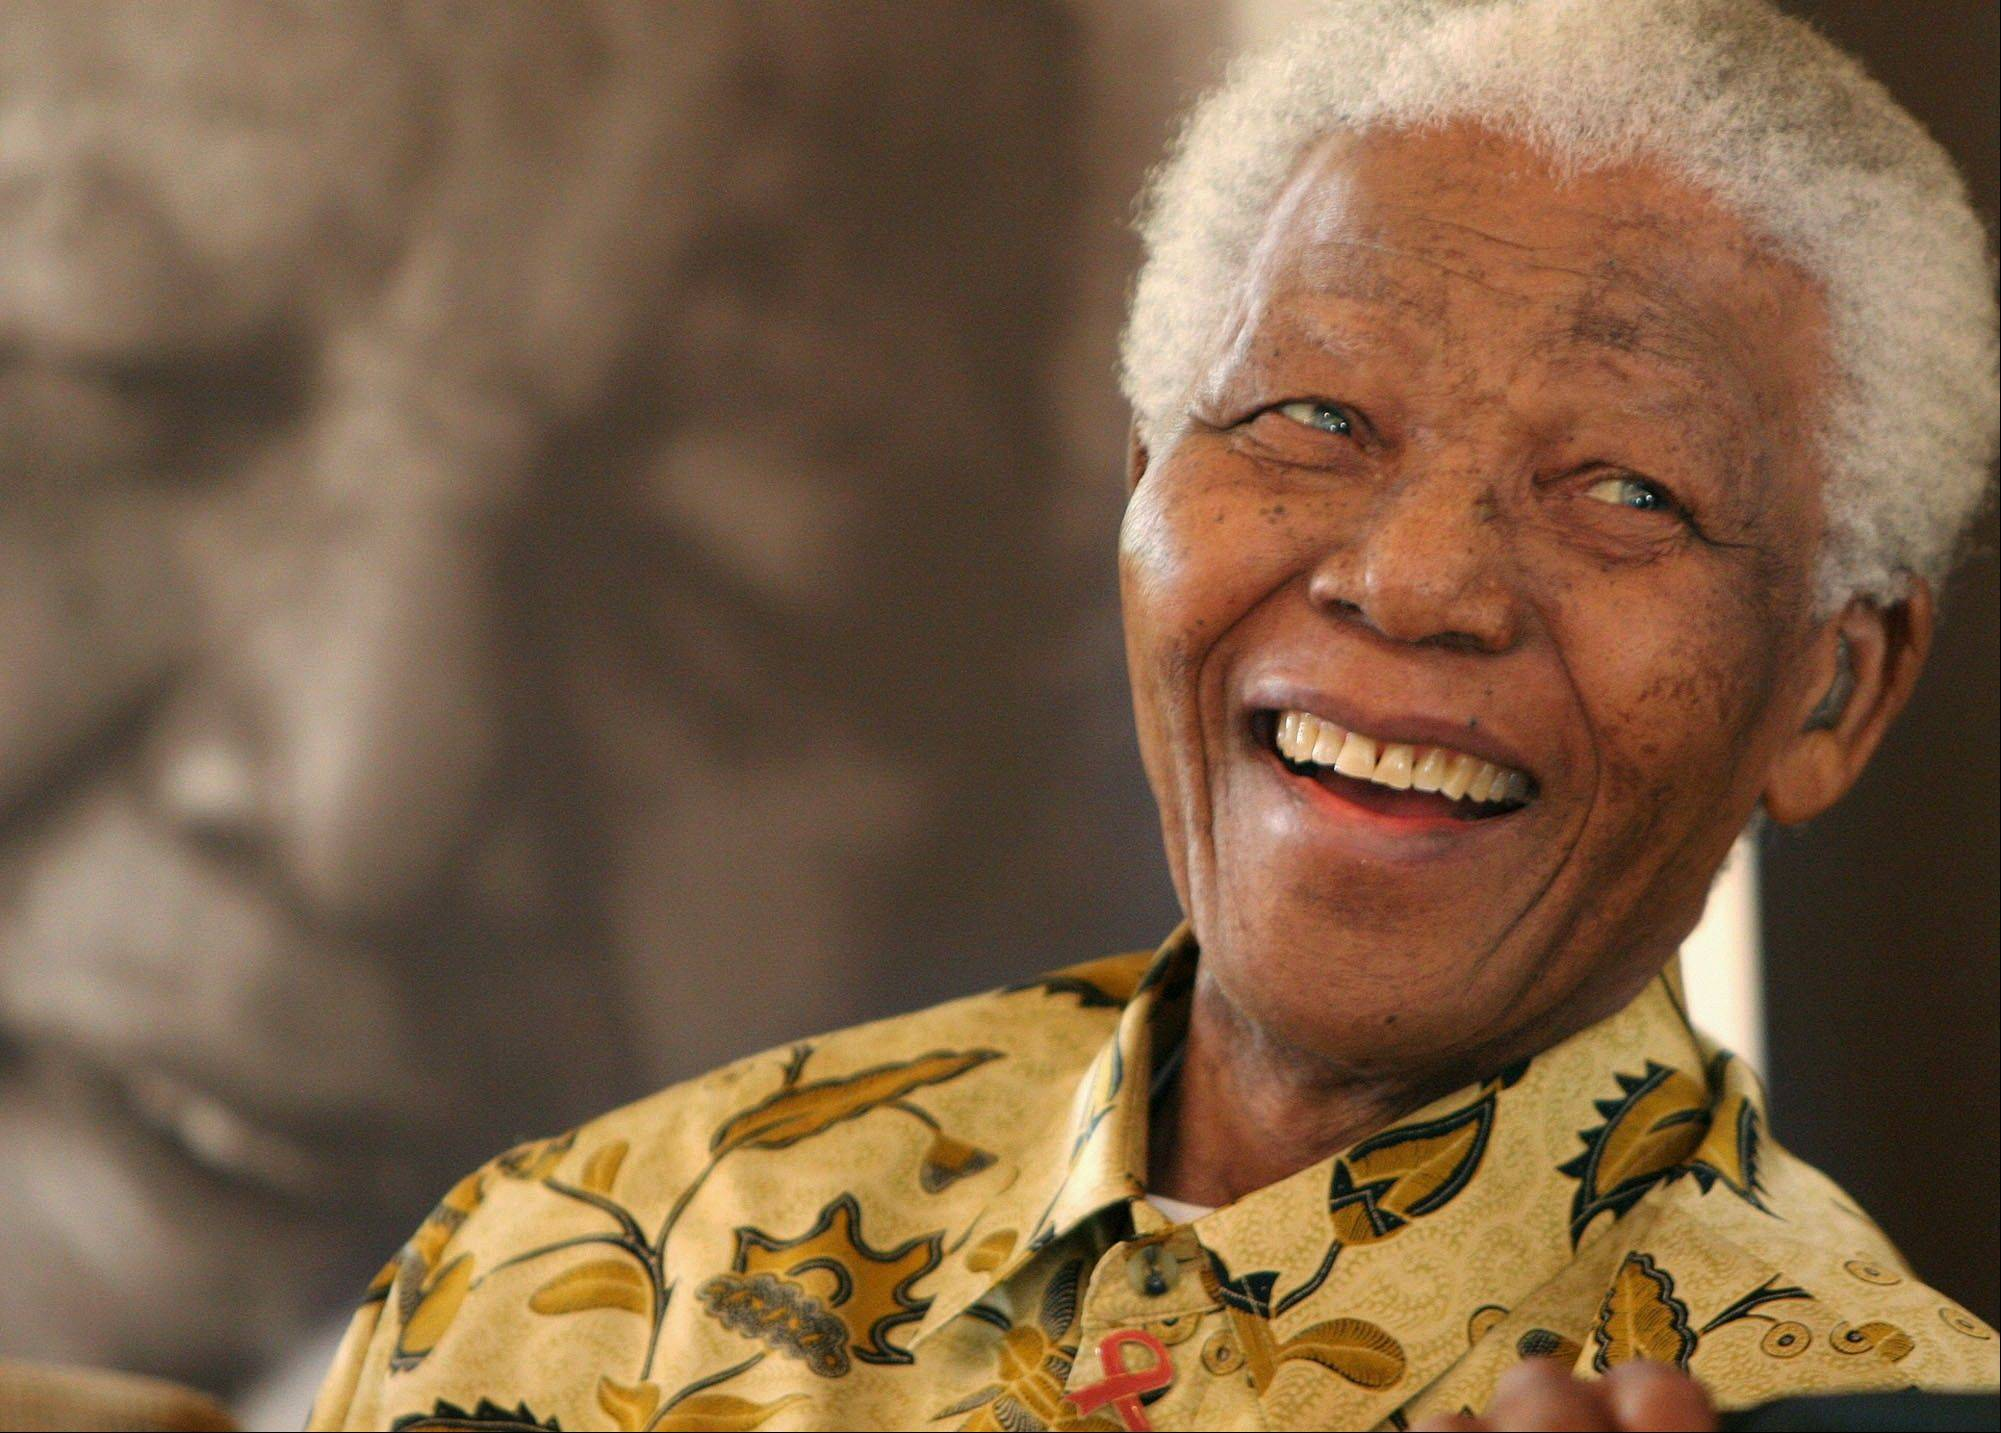 In this Dec. 7, 2005 file photo, former South African President Nelson Mandela, 87, smiles the Mandela Foundation in Johannesburg. On Thursday, Dec. 5, 2013, Mandela died at the age of 95.